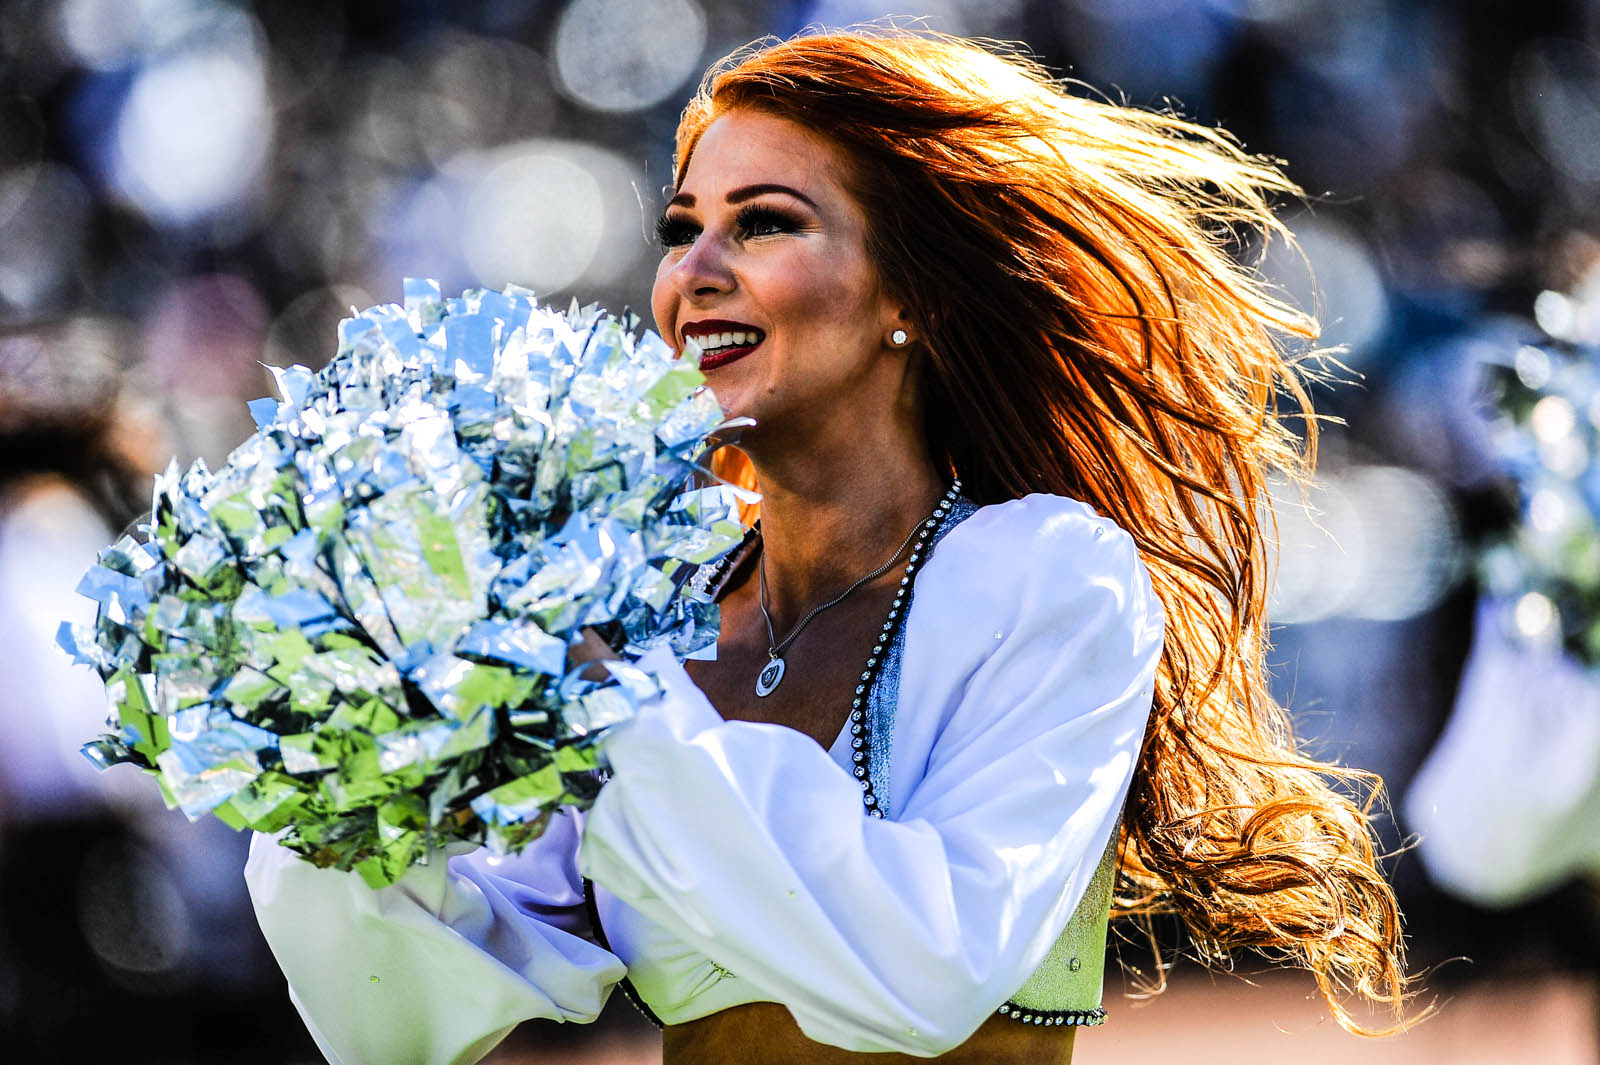 Wendy: NFL cheerleader, Biomedical Engineering PhD candidate